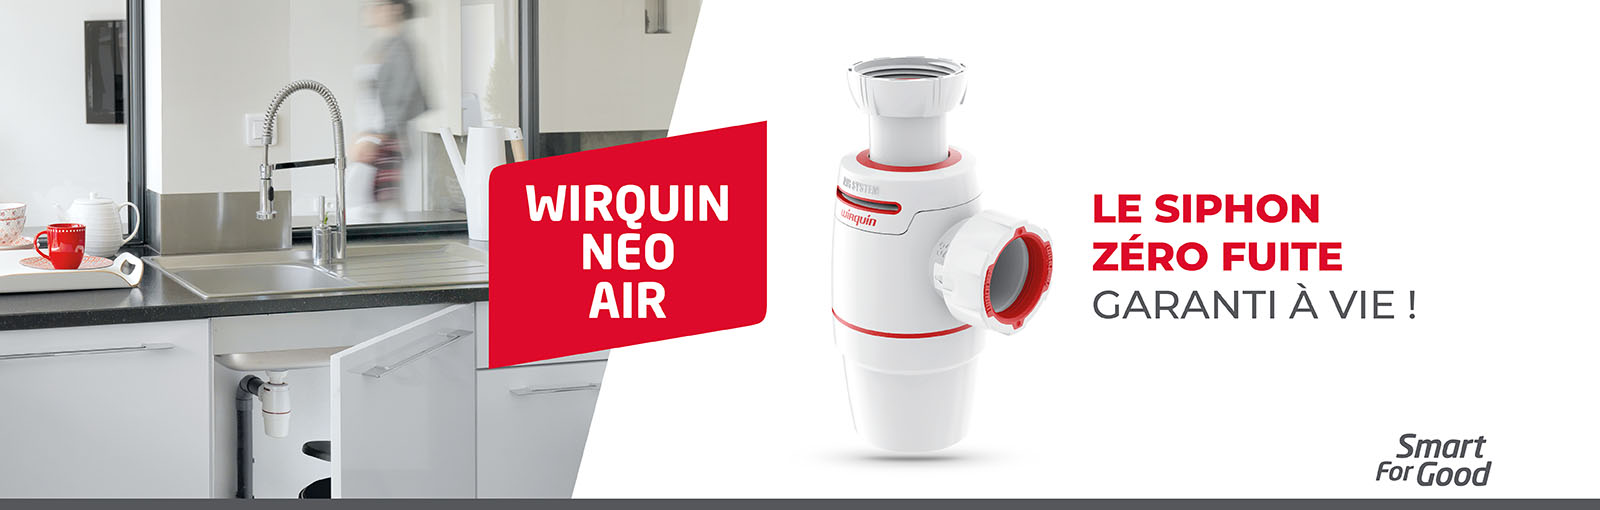 wirquin_neo_air